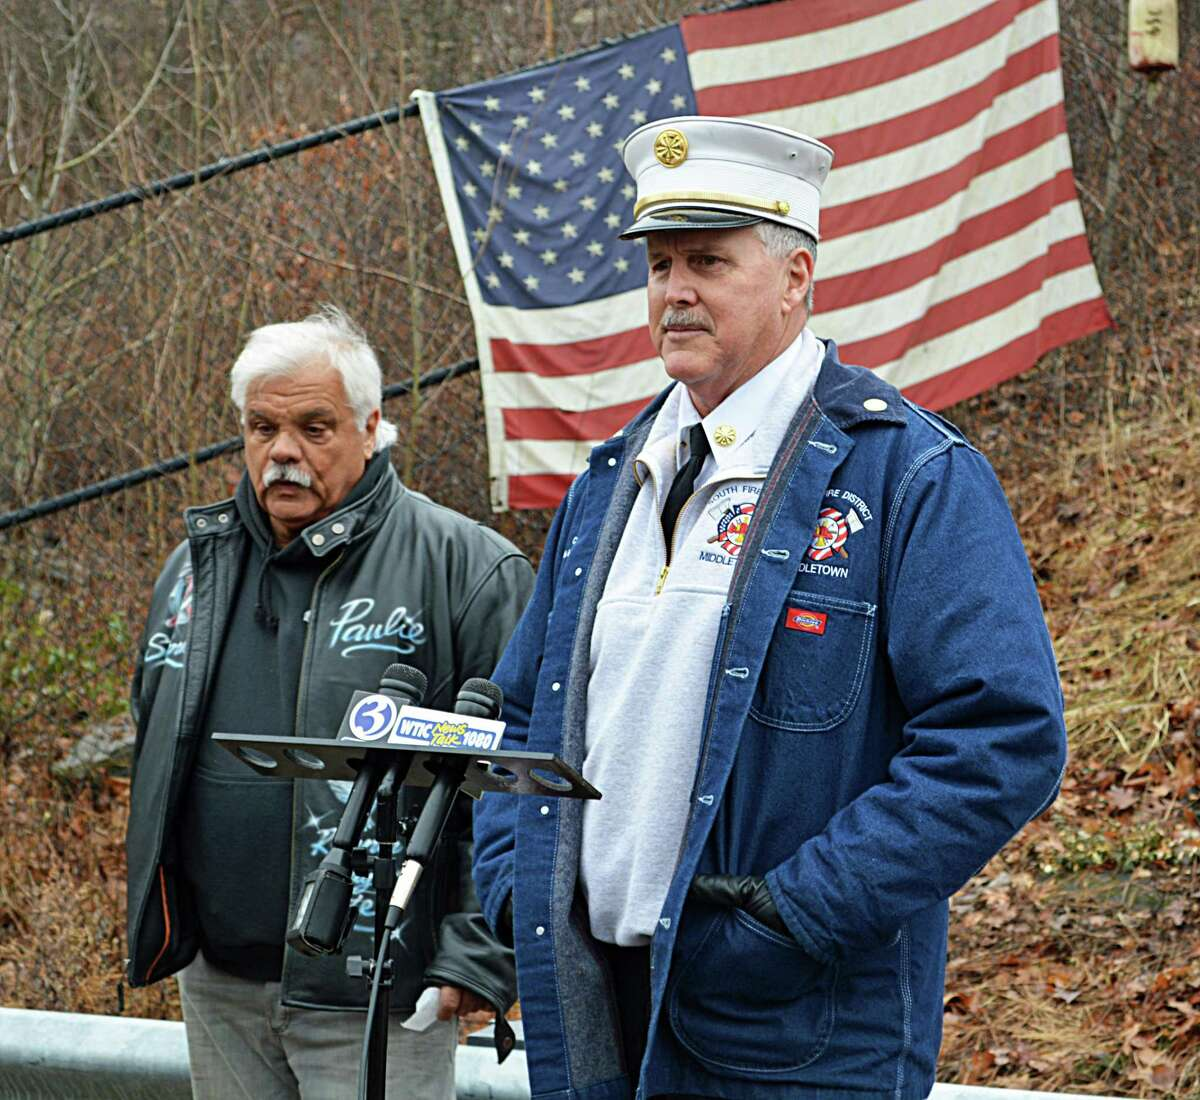 Union workers, officials, and families and friends of the Kleen Energy blast victims gathered Thursday morning at the memorial on River Road in Middletown to remember the six men who died Feb. 7, 2010, in the tragic gas explosion. Here, South Fire District Chief Michael Howley, right, and event organizer and former plant worker Paul Venti, left, speak to those in attendance.